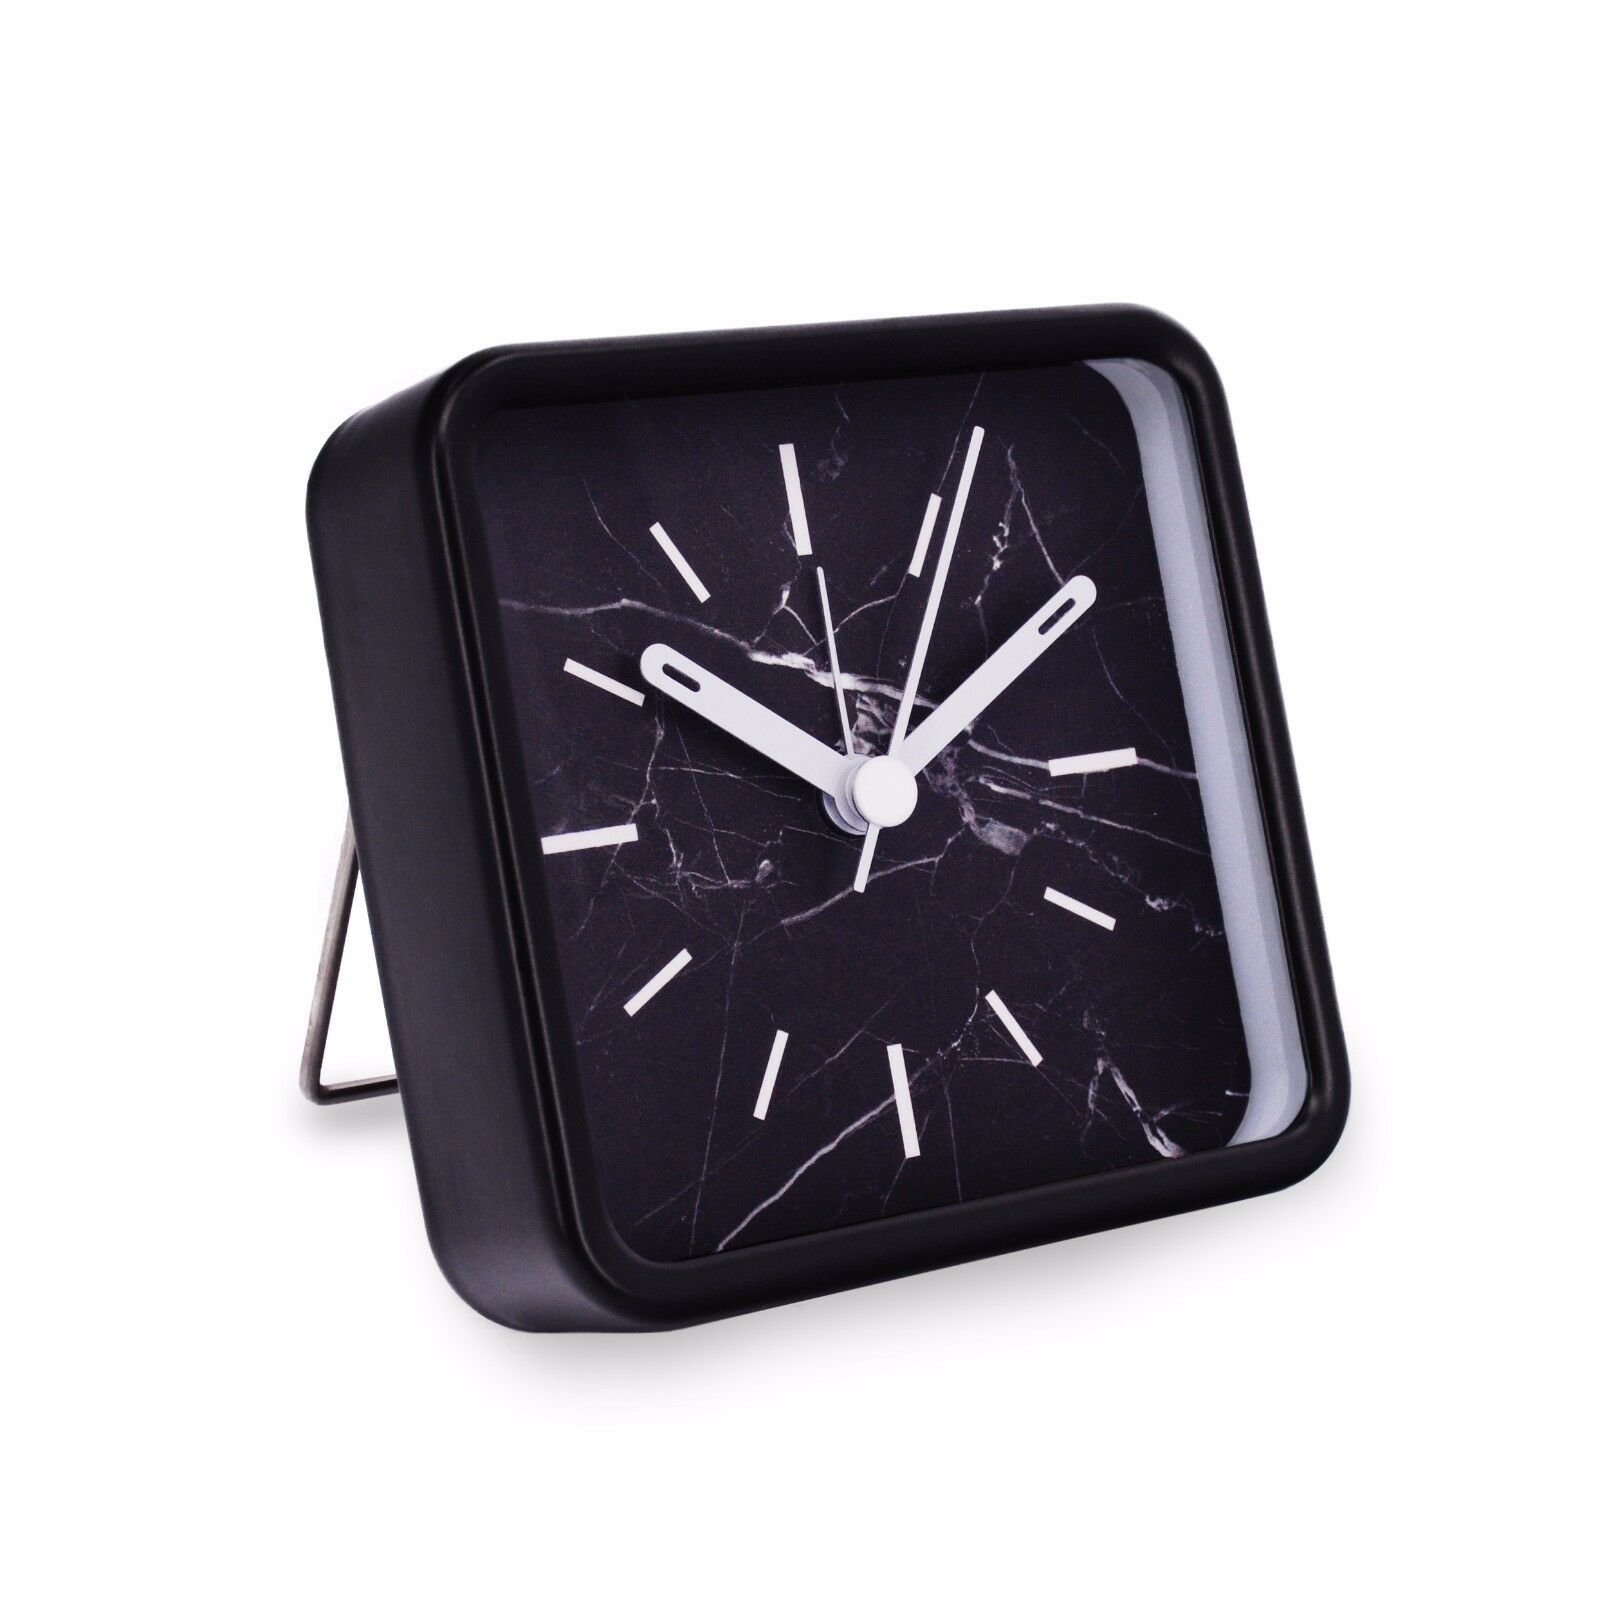 Small Modern Portable Marble Pattern Metal Quartz Desk Clock Battery Operated 1 Of 5free See More